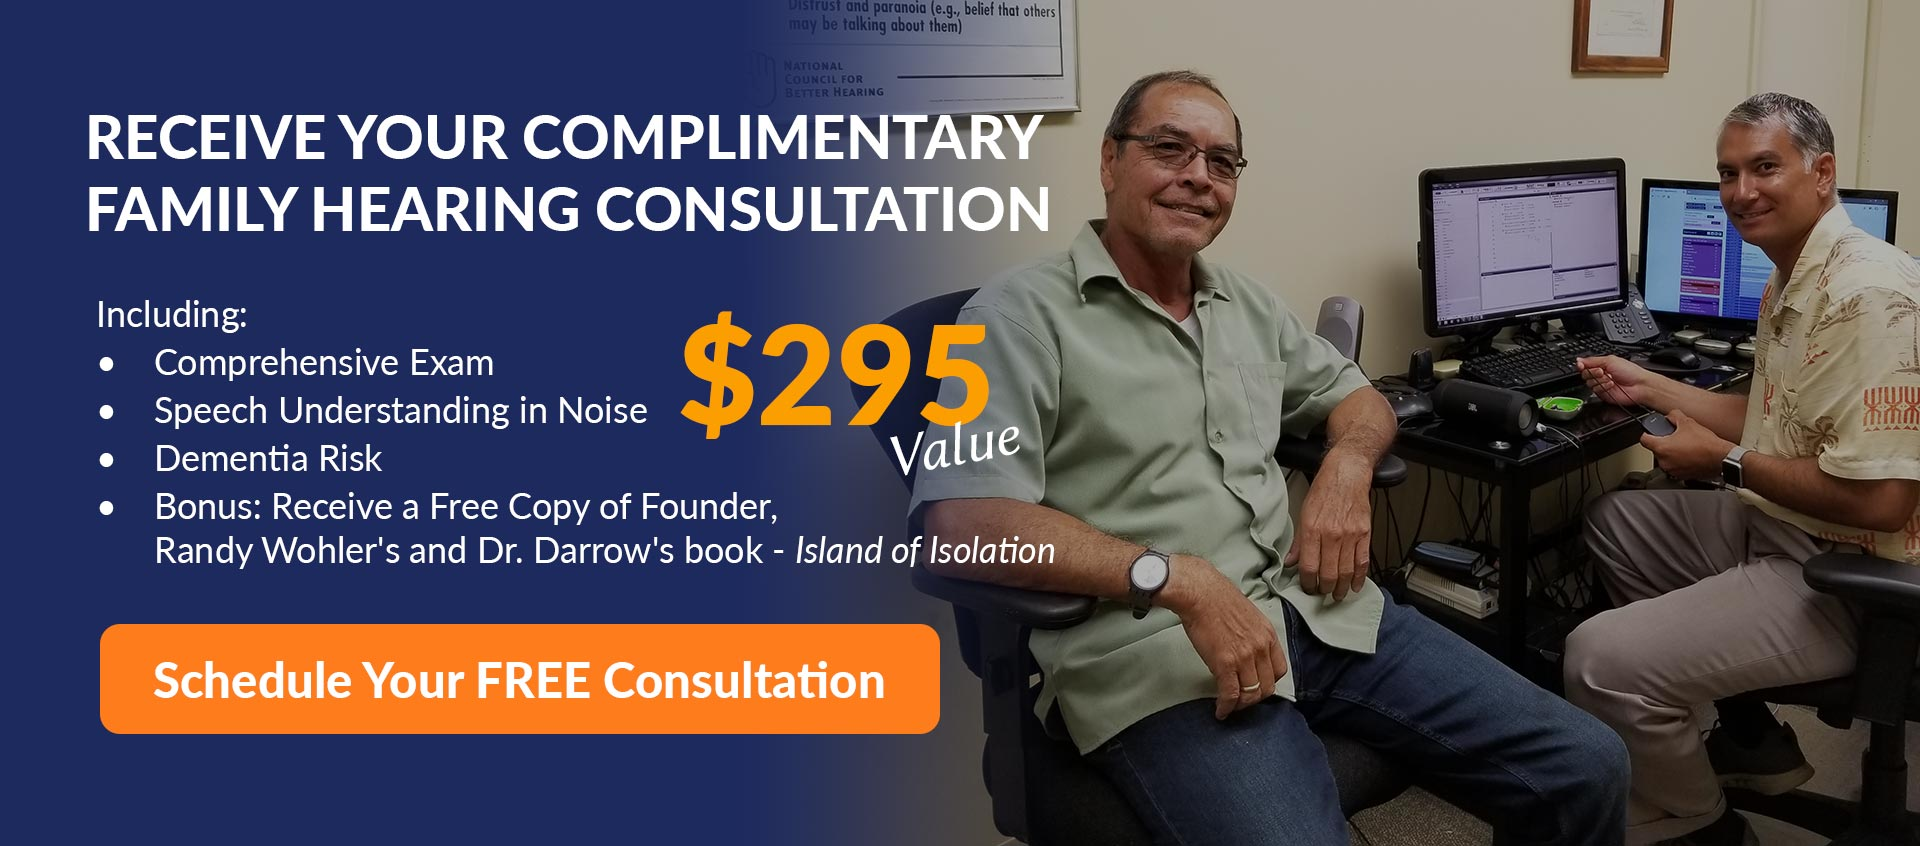 hearing consultation maui hawaii